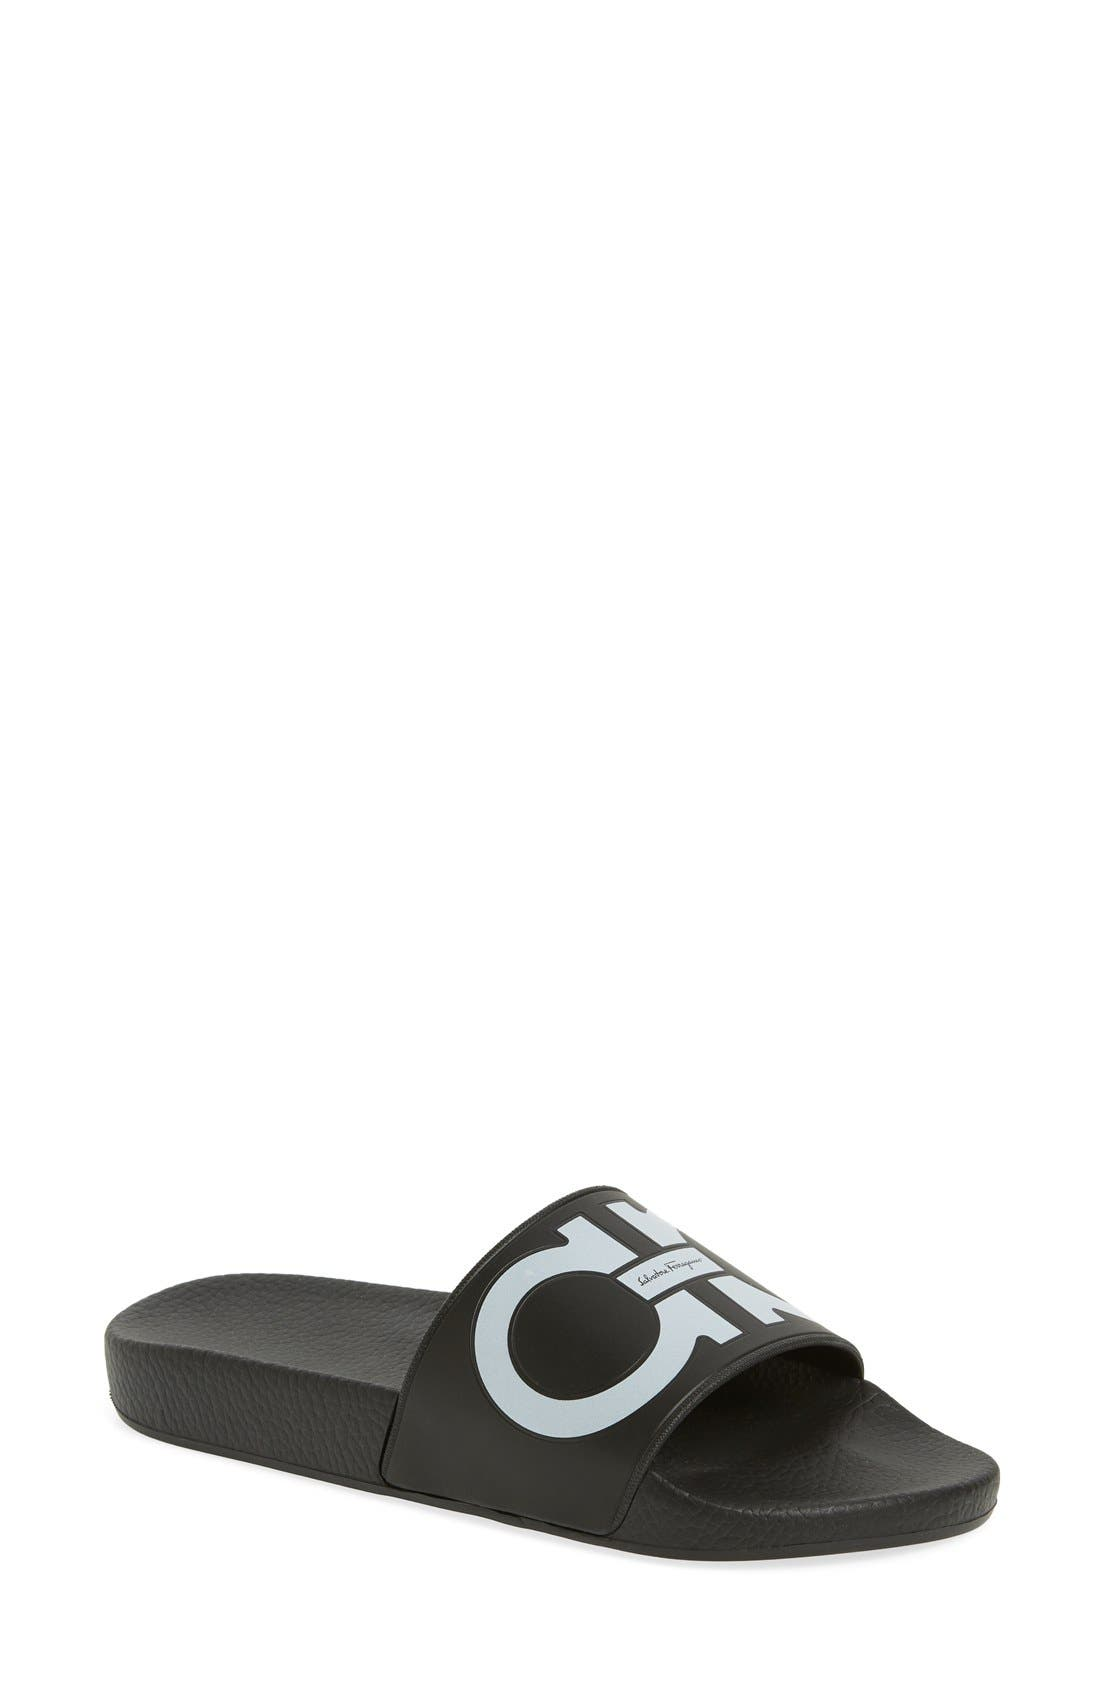 Groove Logo Slide Sandal,                             Main thumbnail 1, color,                             001